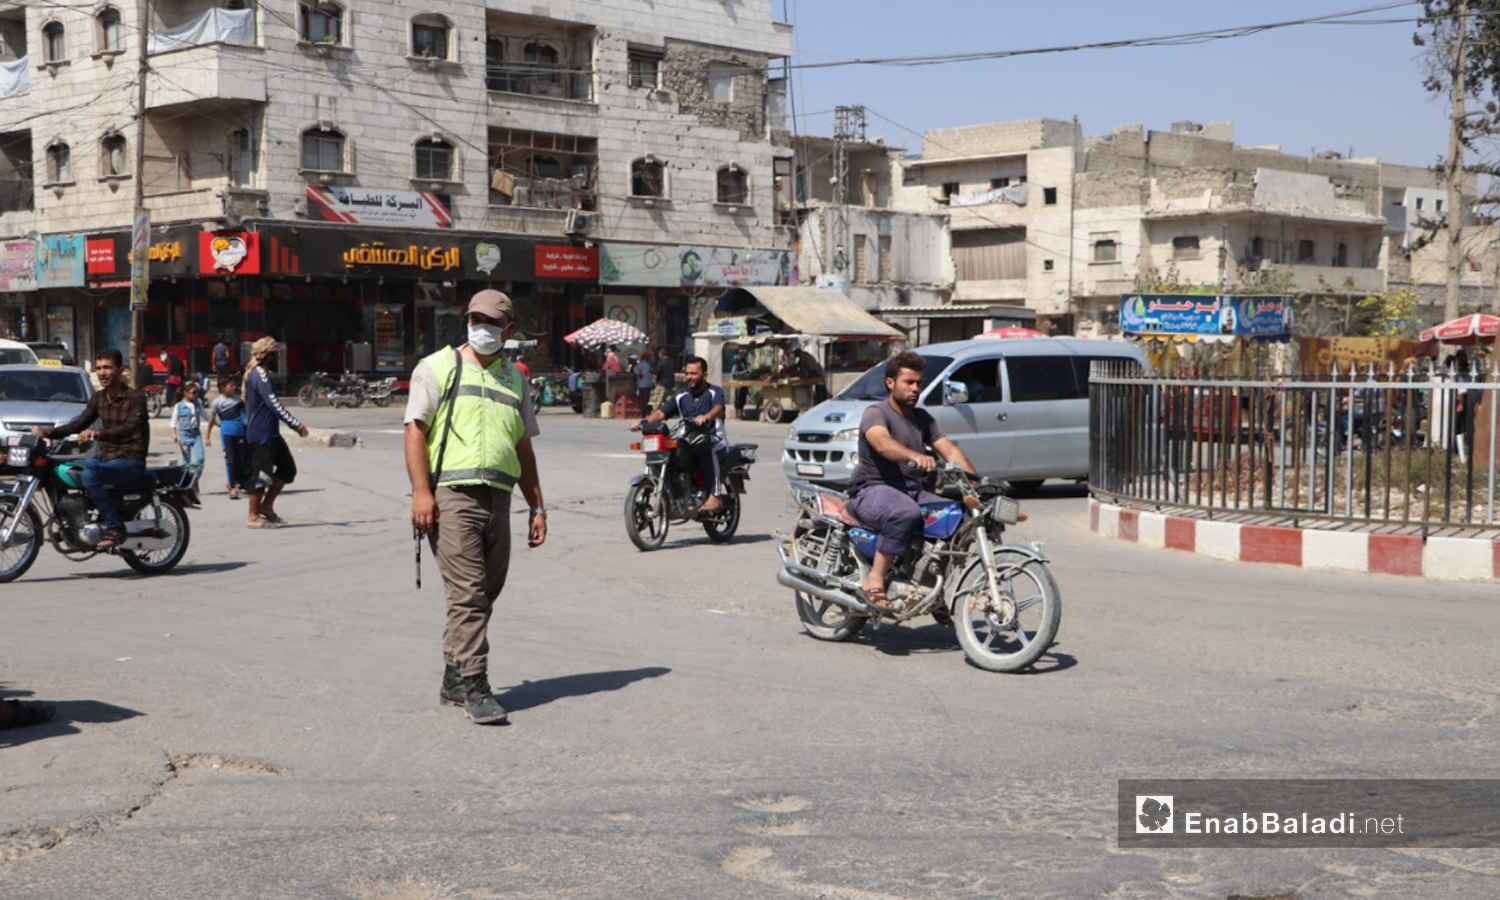 A security member of the local council in the city of al-Bab in the northern countryside of Aleppo monitoring traffic - September 2020 (Enab Baladi)